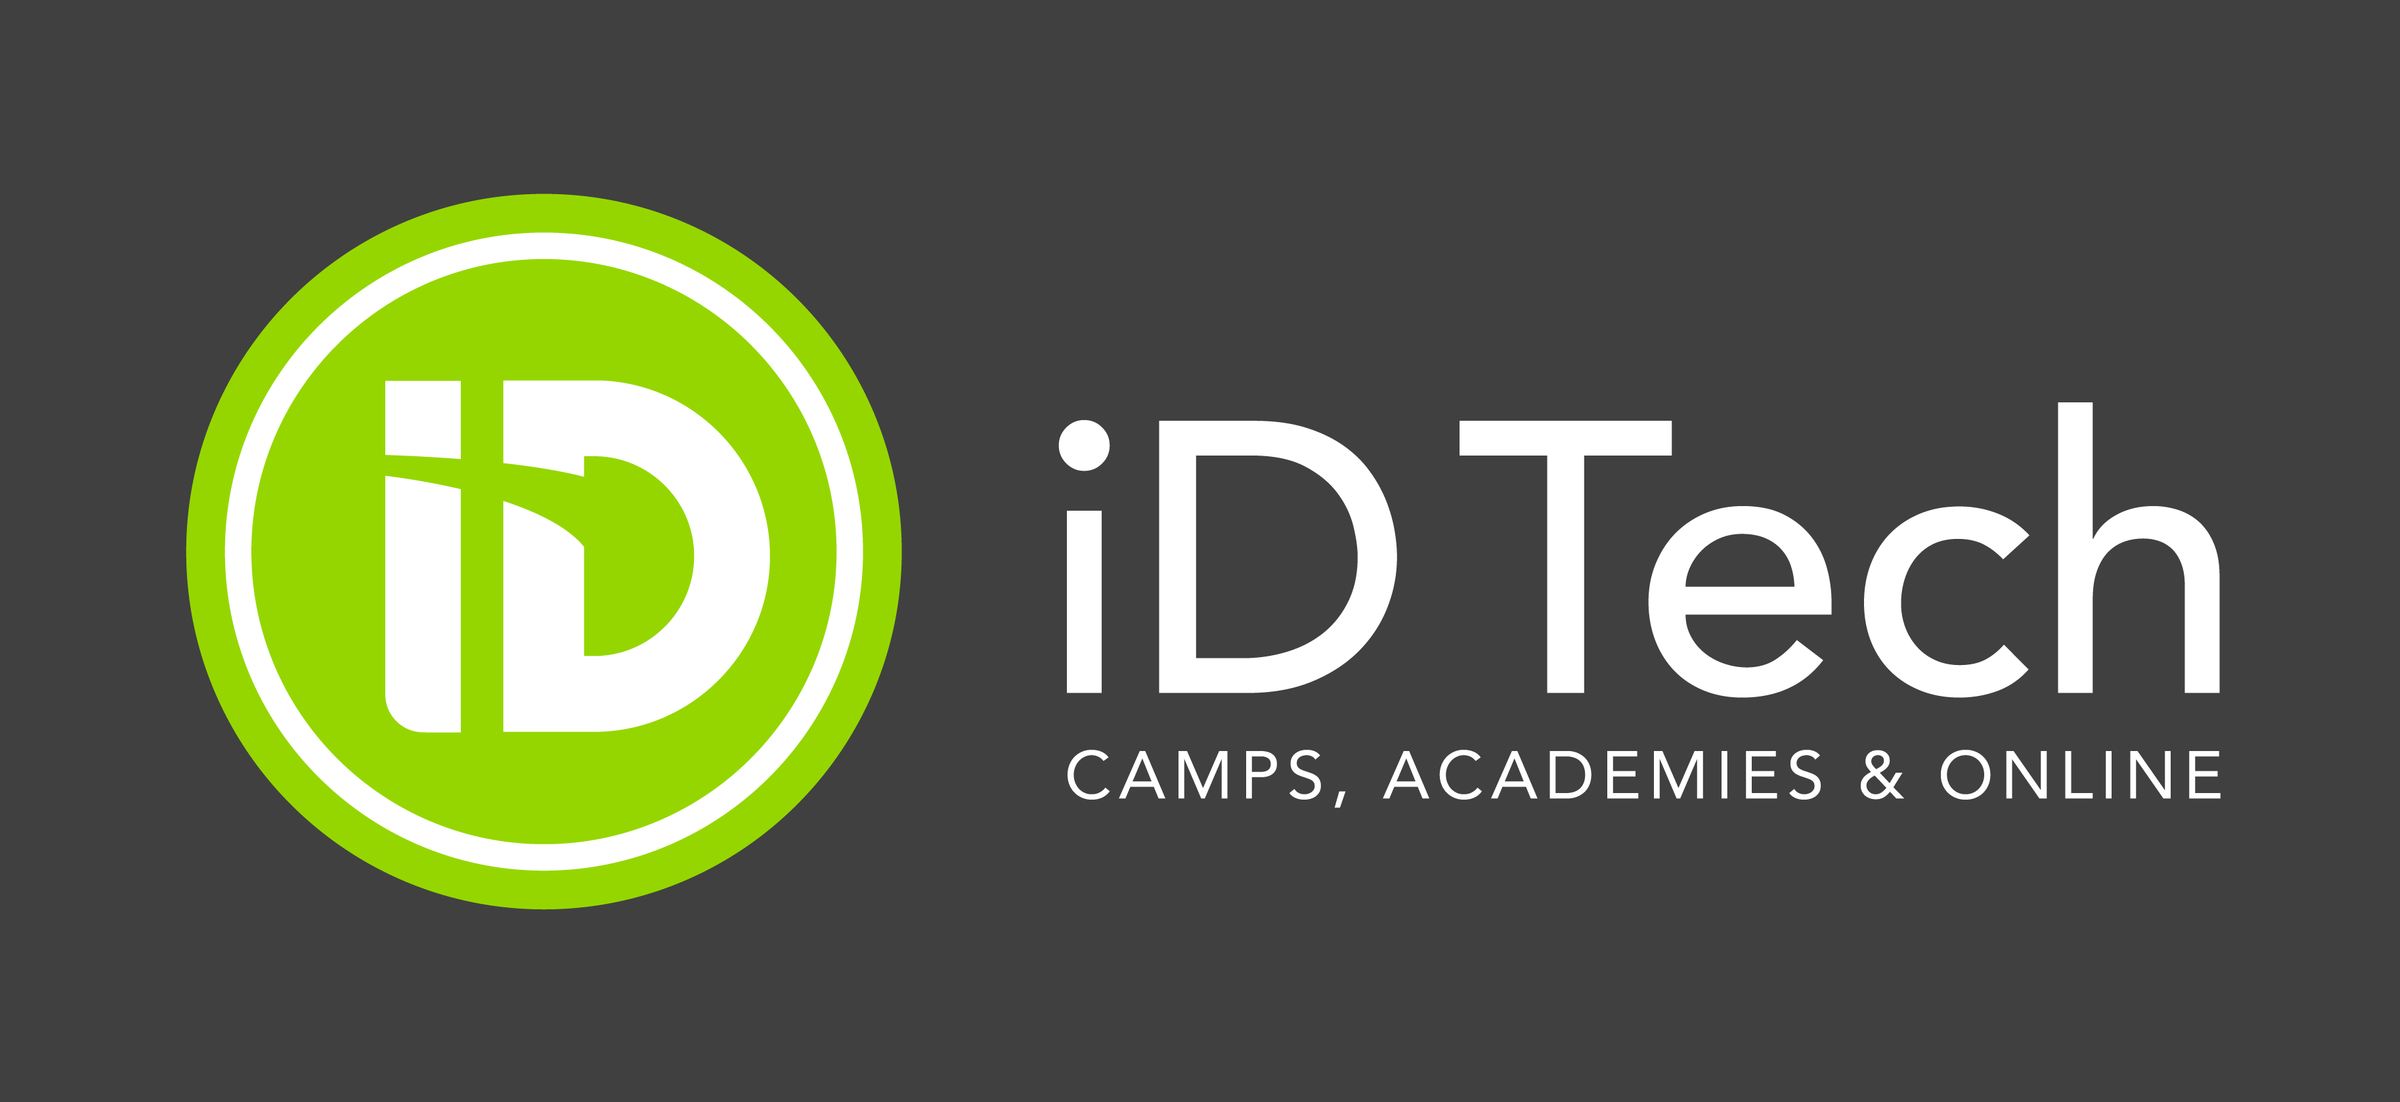 iD Tech Camps: #1 in STEM Education - Held at University of Nevada, Las Vegas